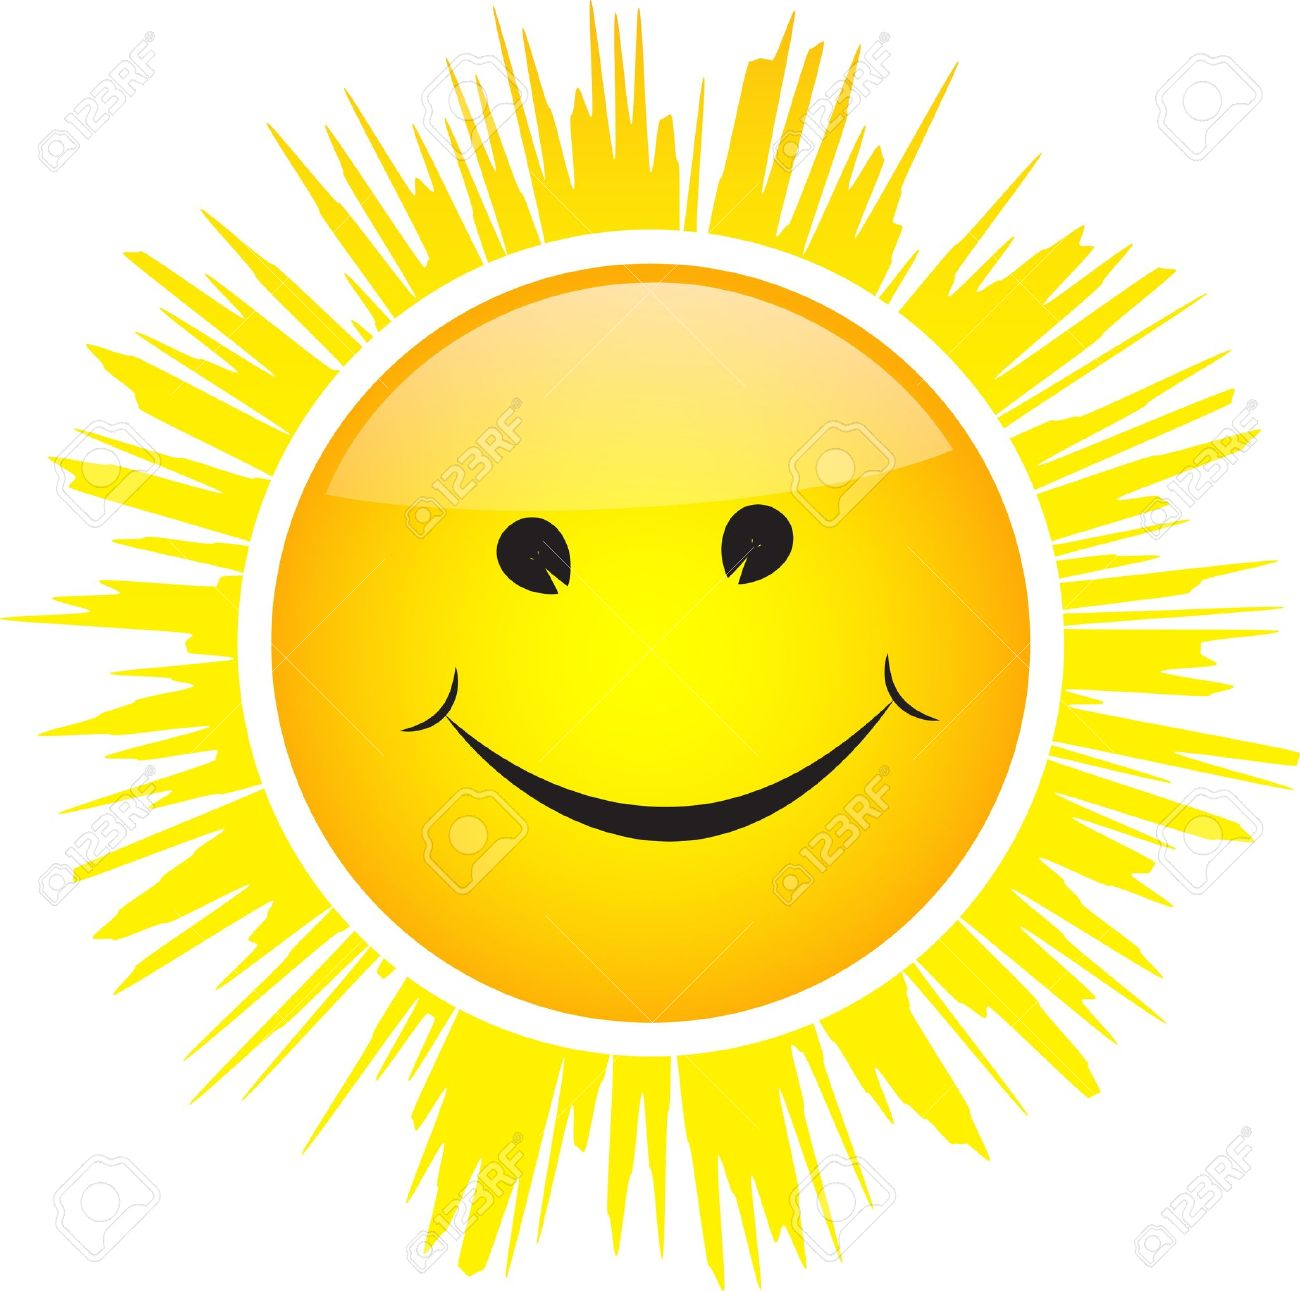 15,544 Smiling Sun Stock Vector Illustration And Royalty Free ...